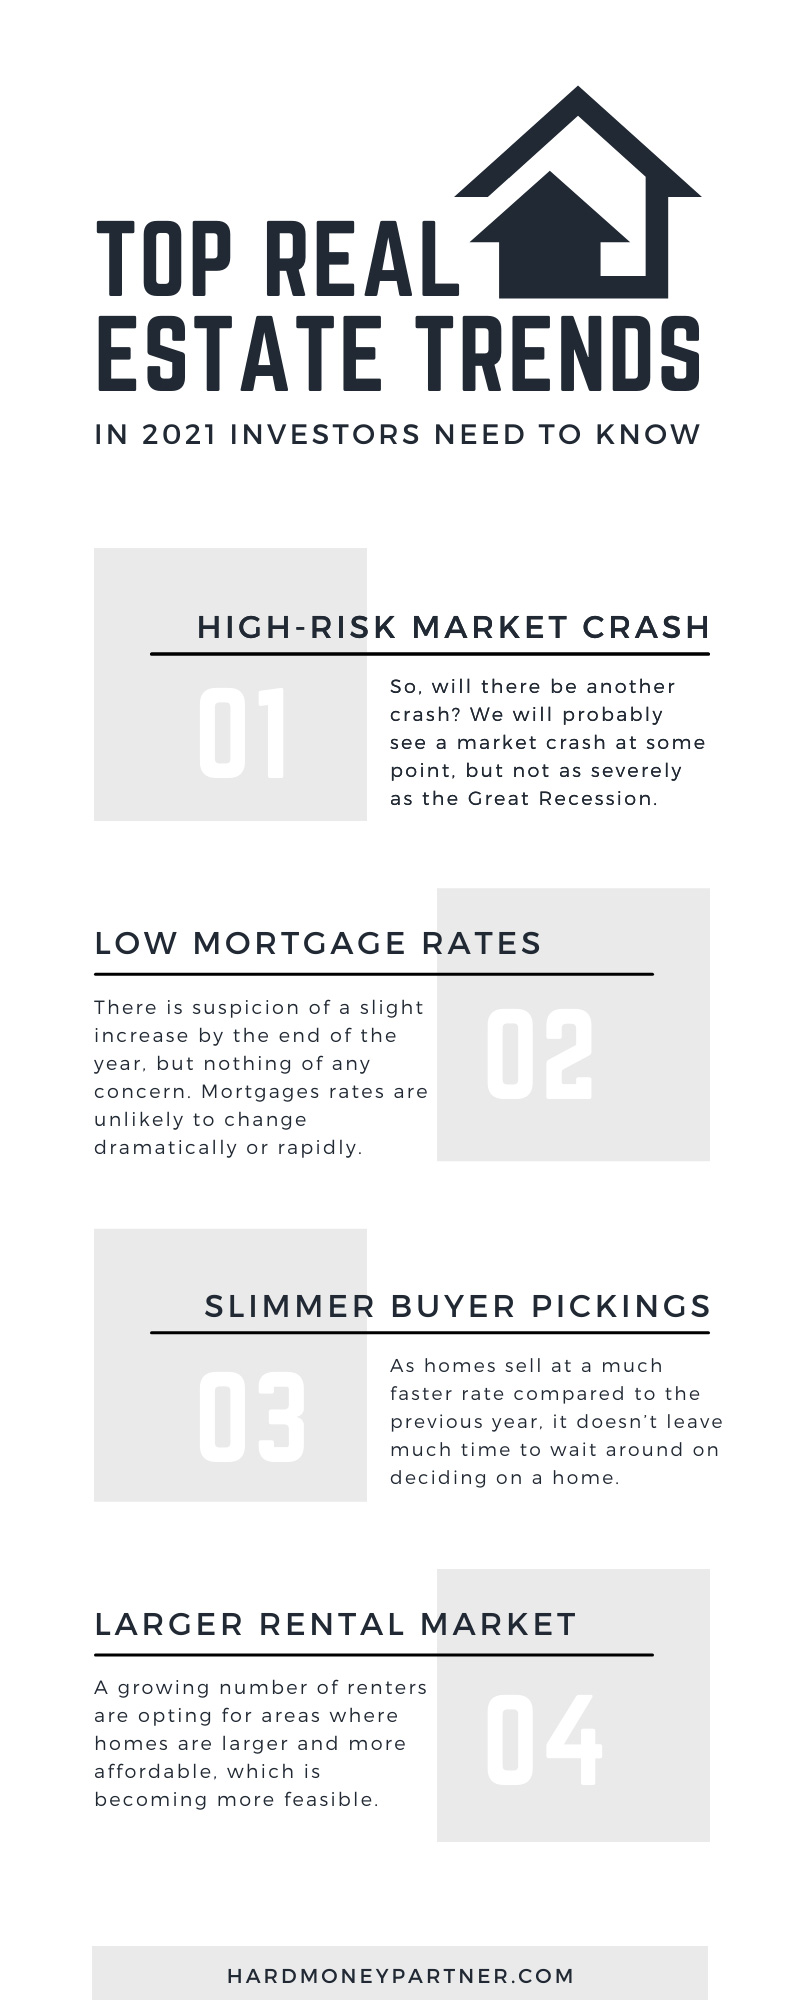 Top Real Estate Trends in 2021 Investors Need To Know